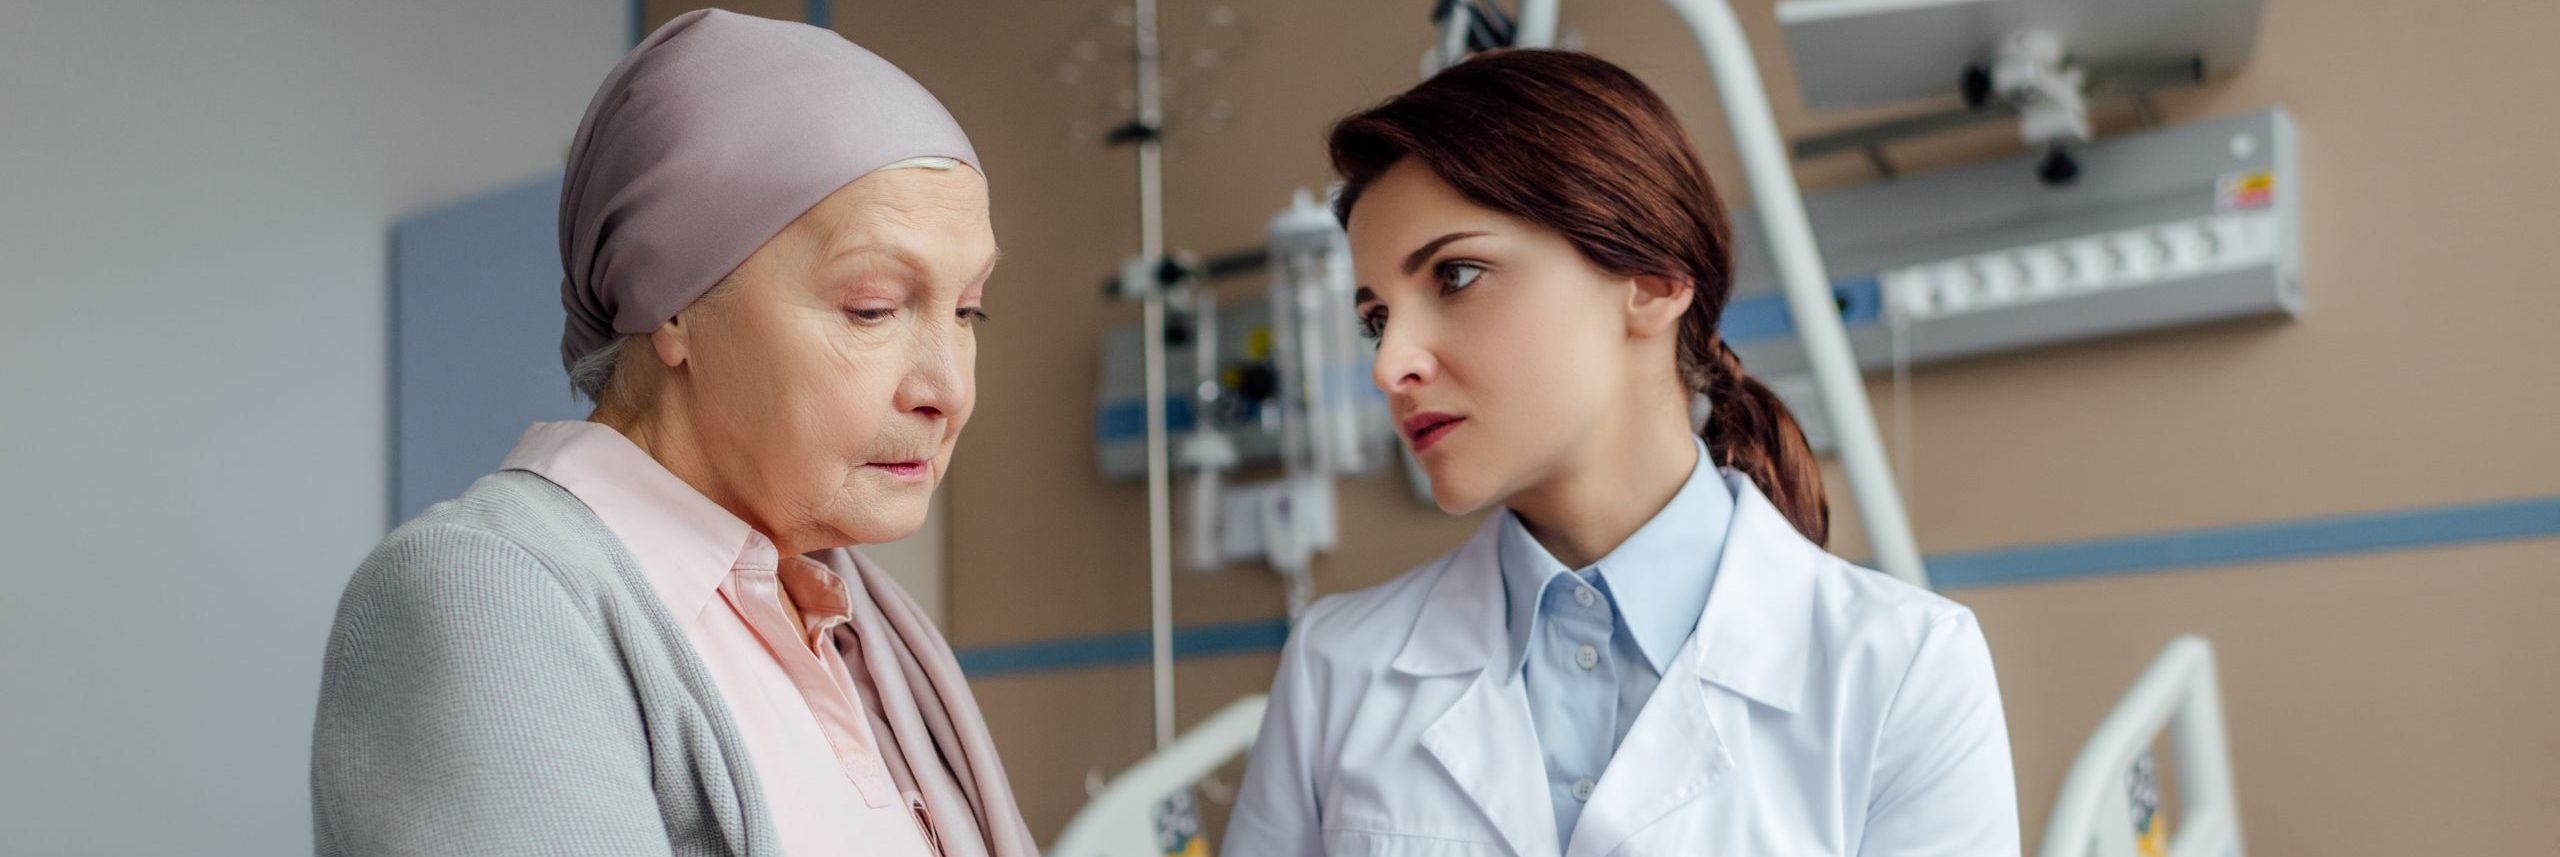 crello-234261180-stock-photo-worried-female-doctor-holding-hands (1)